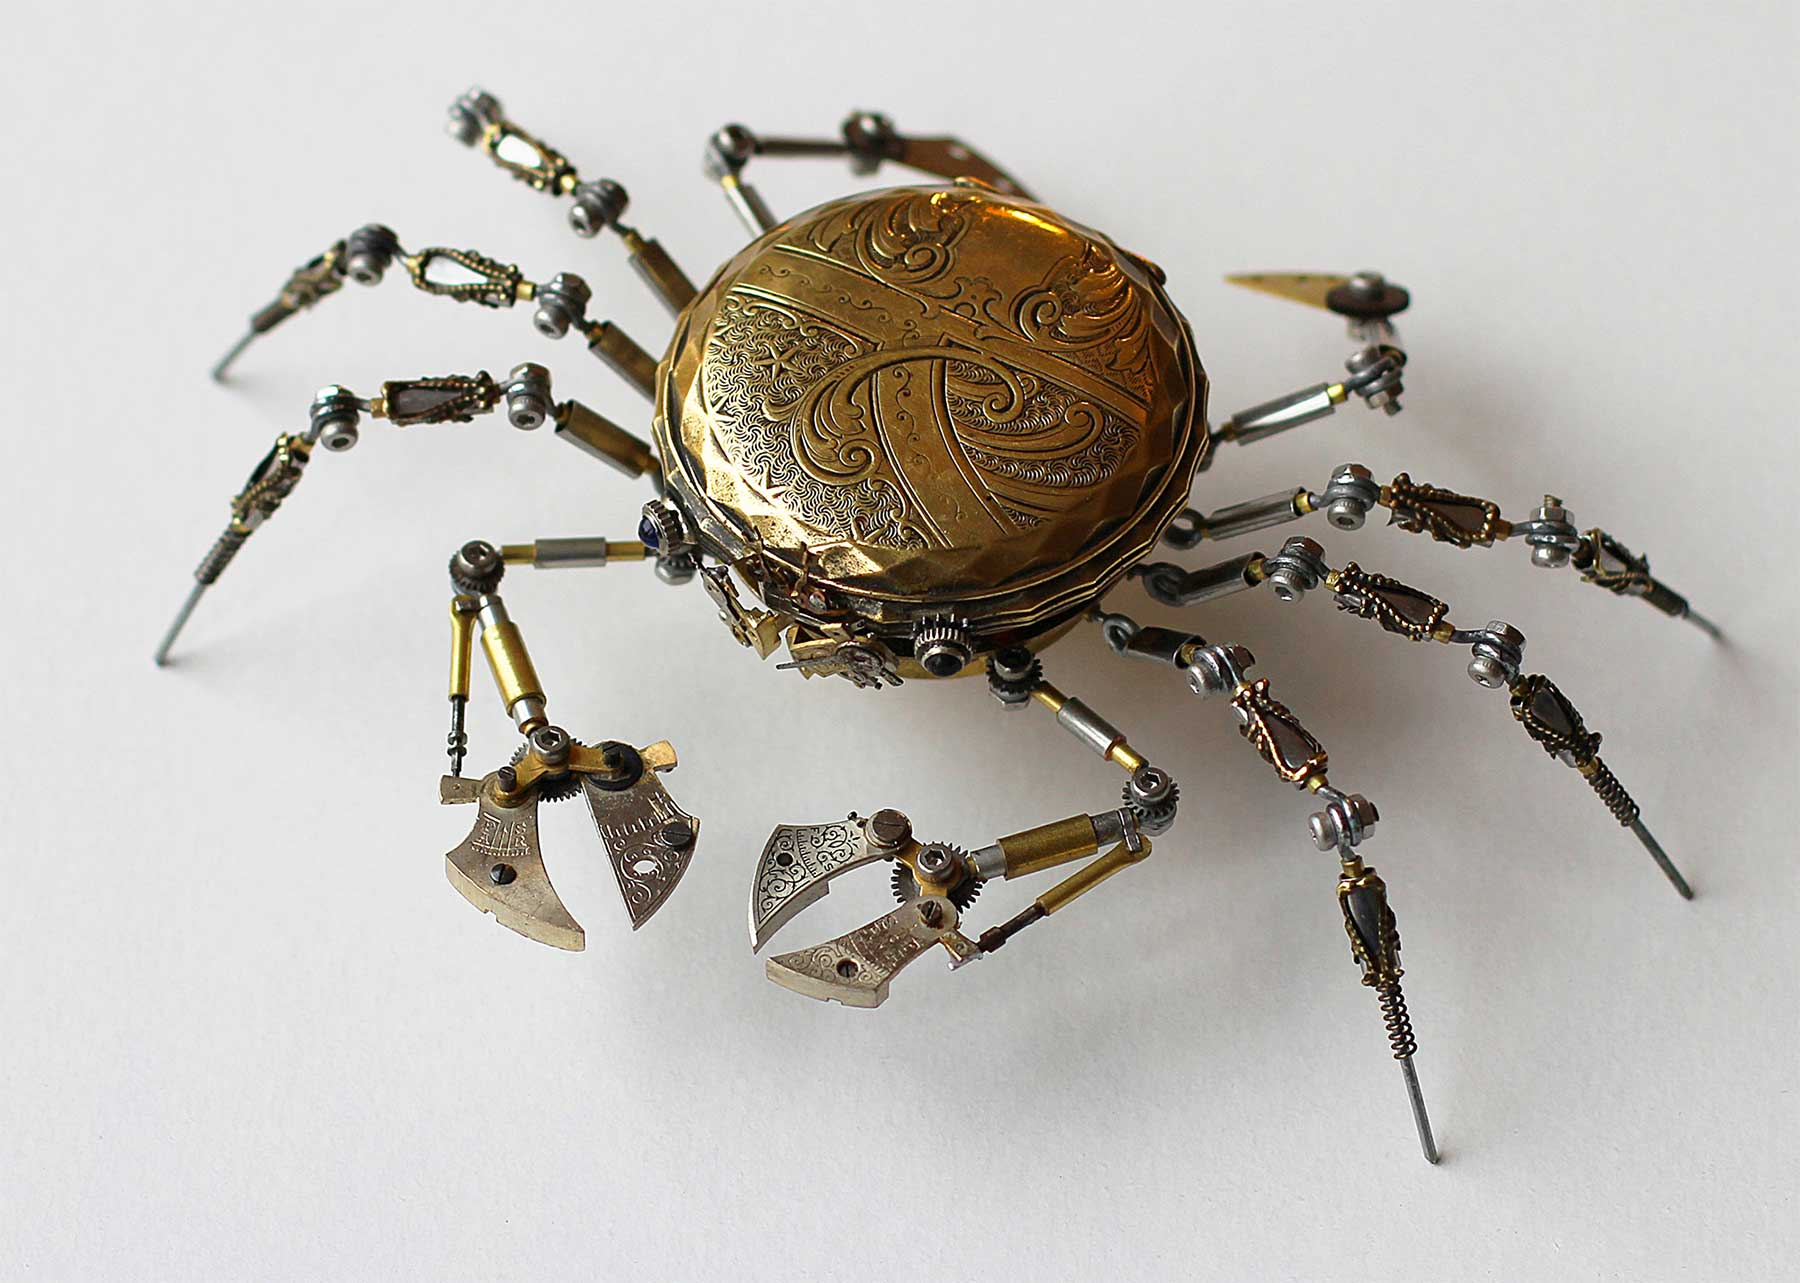 Steampunk Spiders von Peter Szucsy Steampunk-Spiders-Peter-Szucsy_05